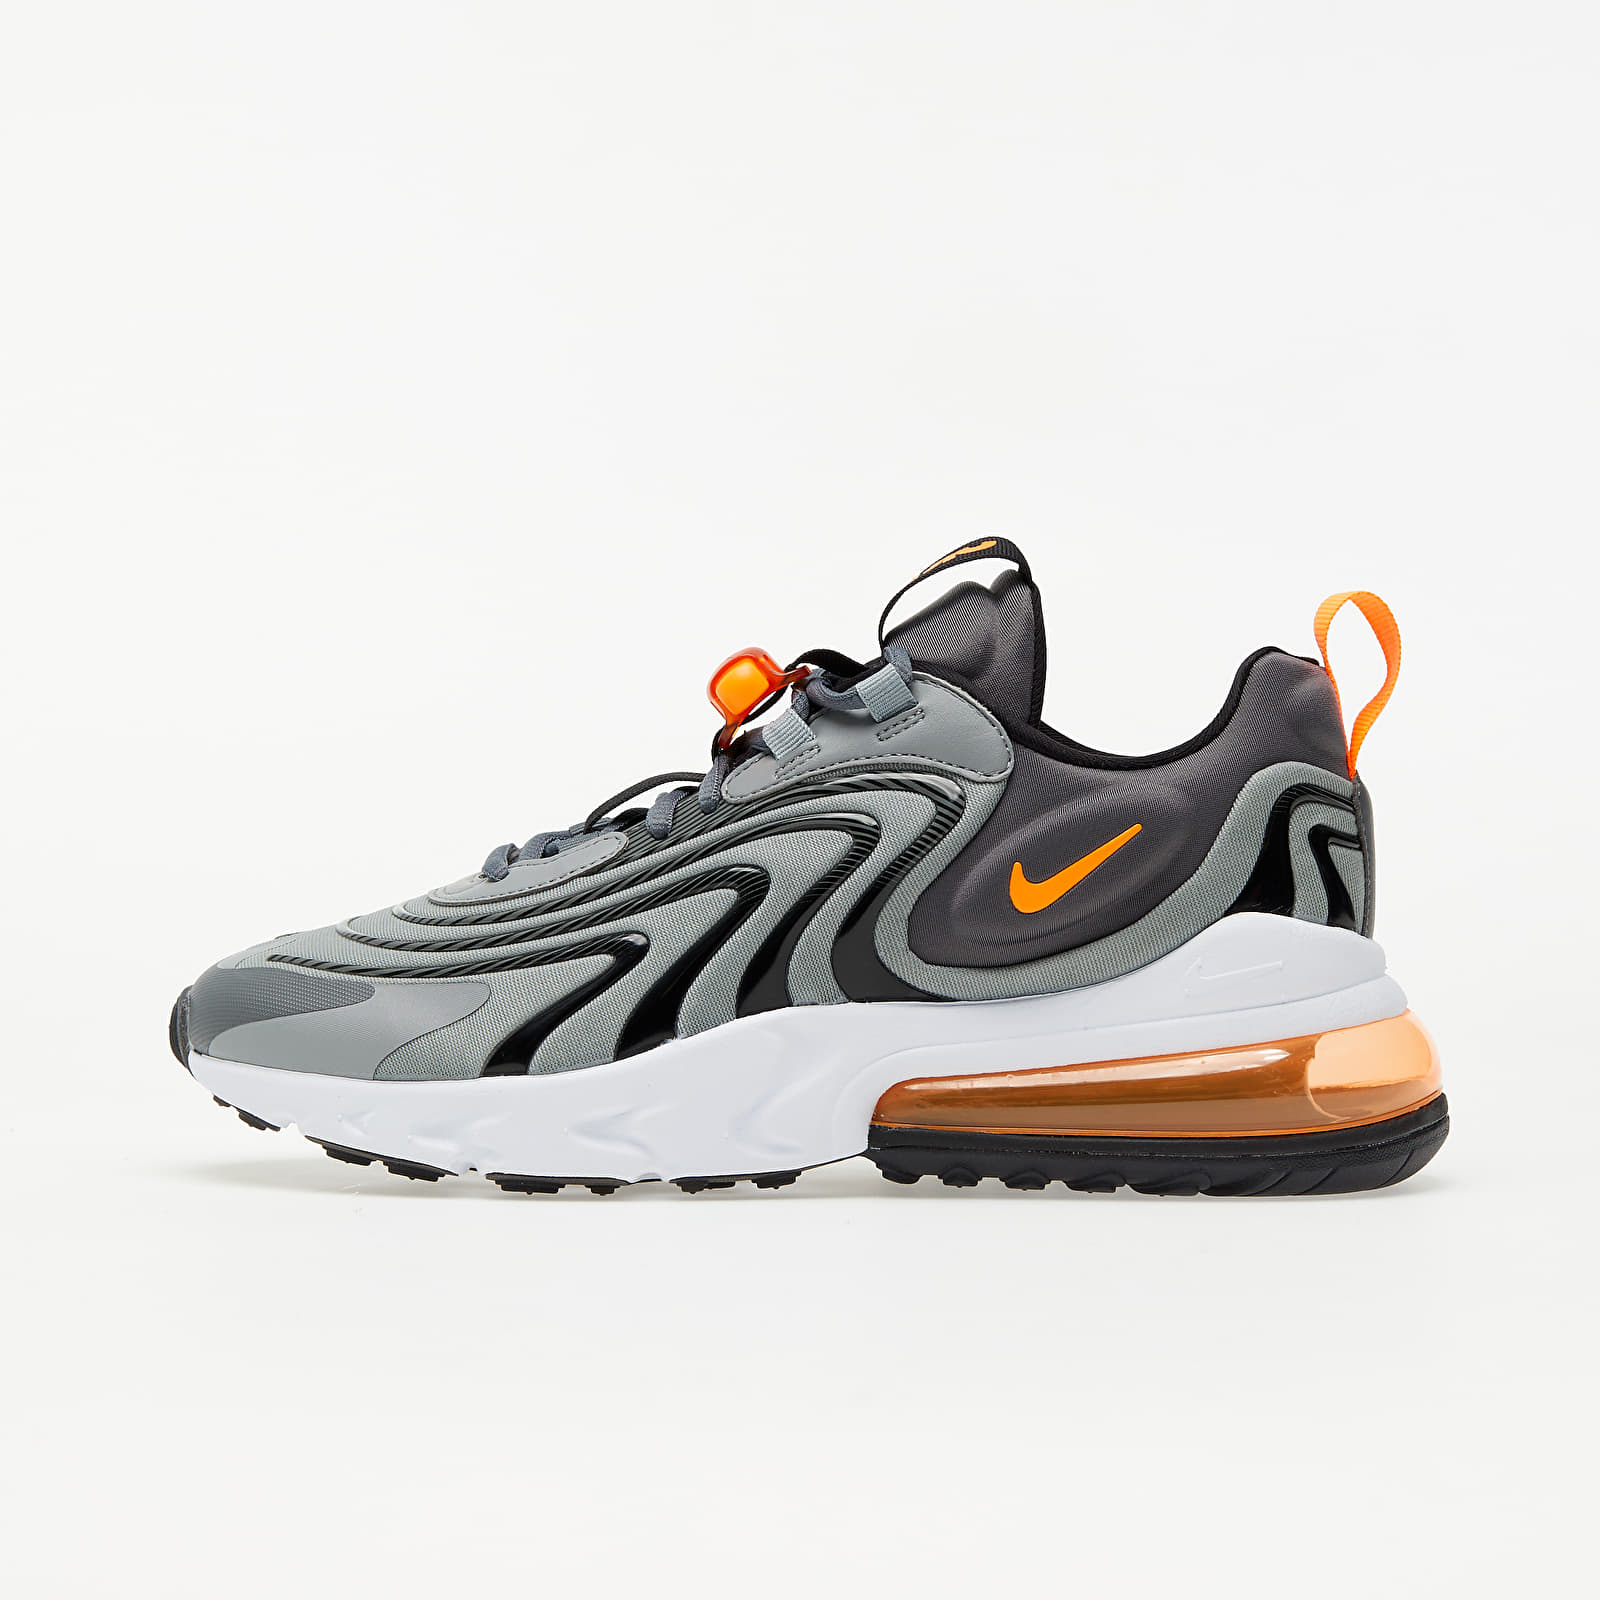 Pánske tenisky a topánky Nike Air Max 270 React ENG Iron Grey/ Total Orange-Particle Grey